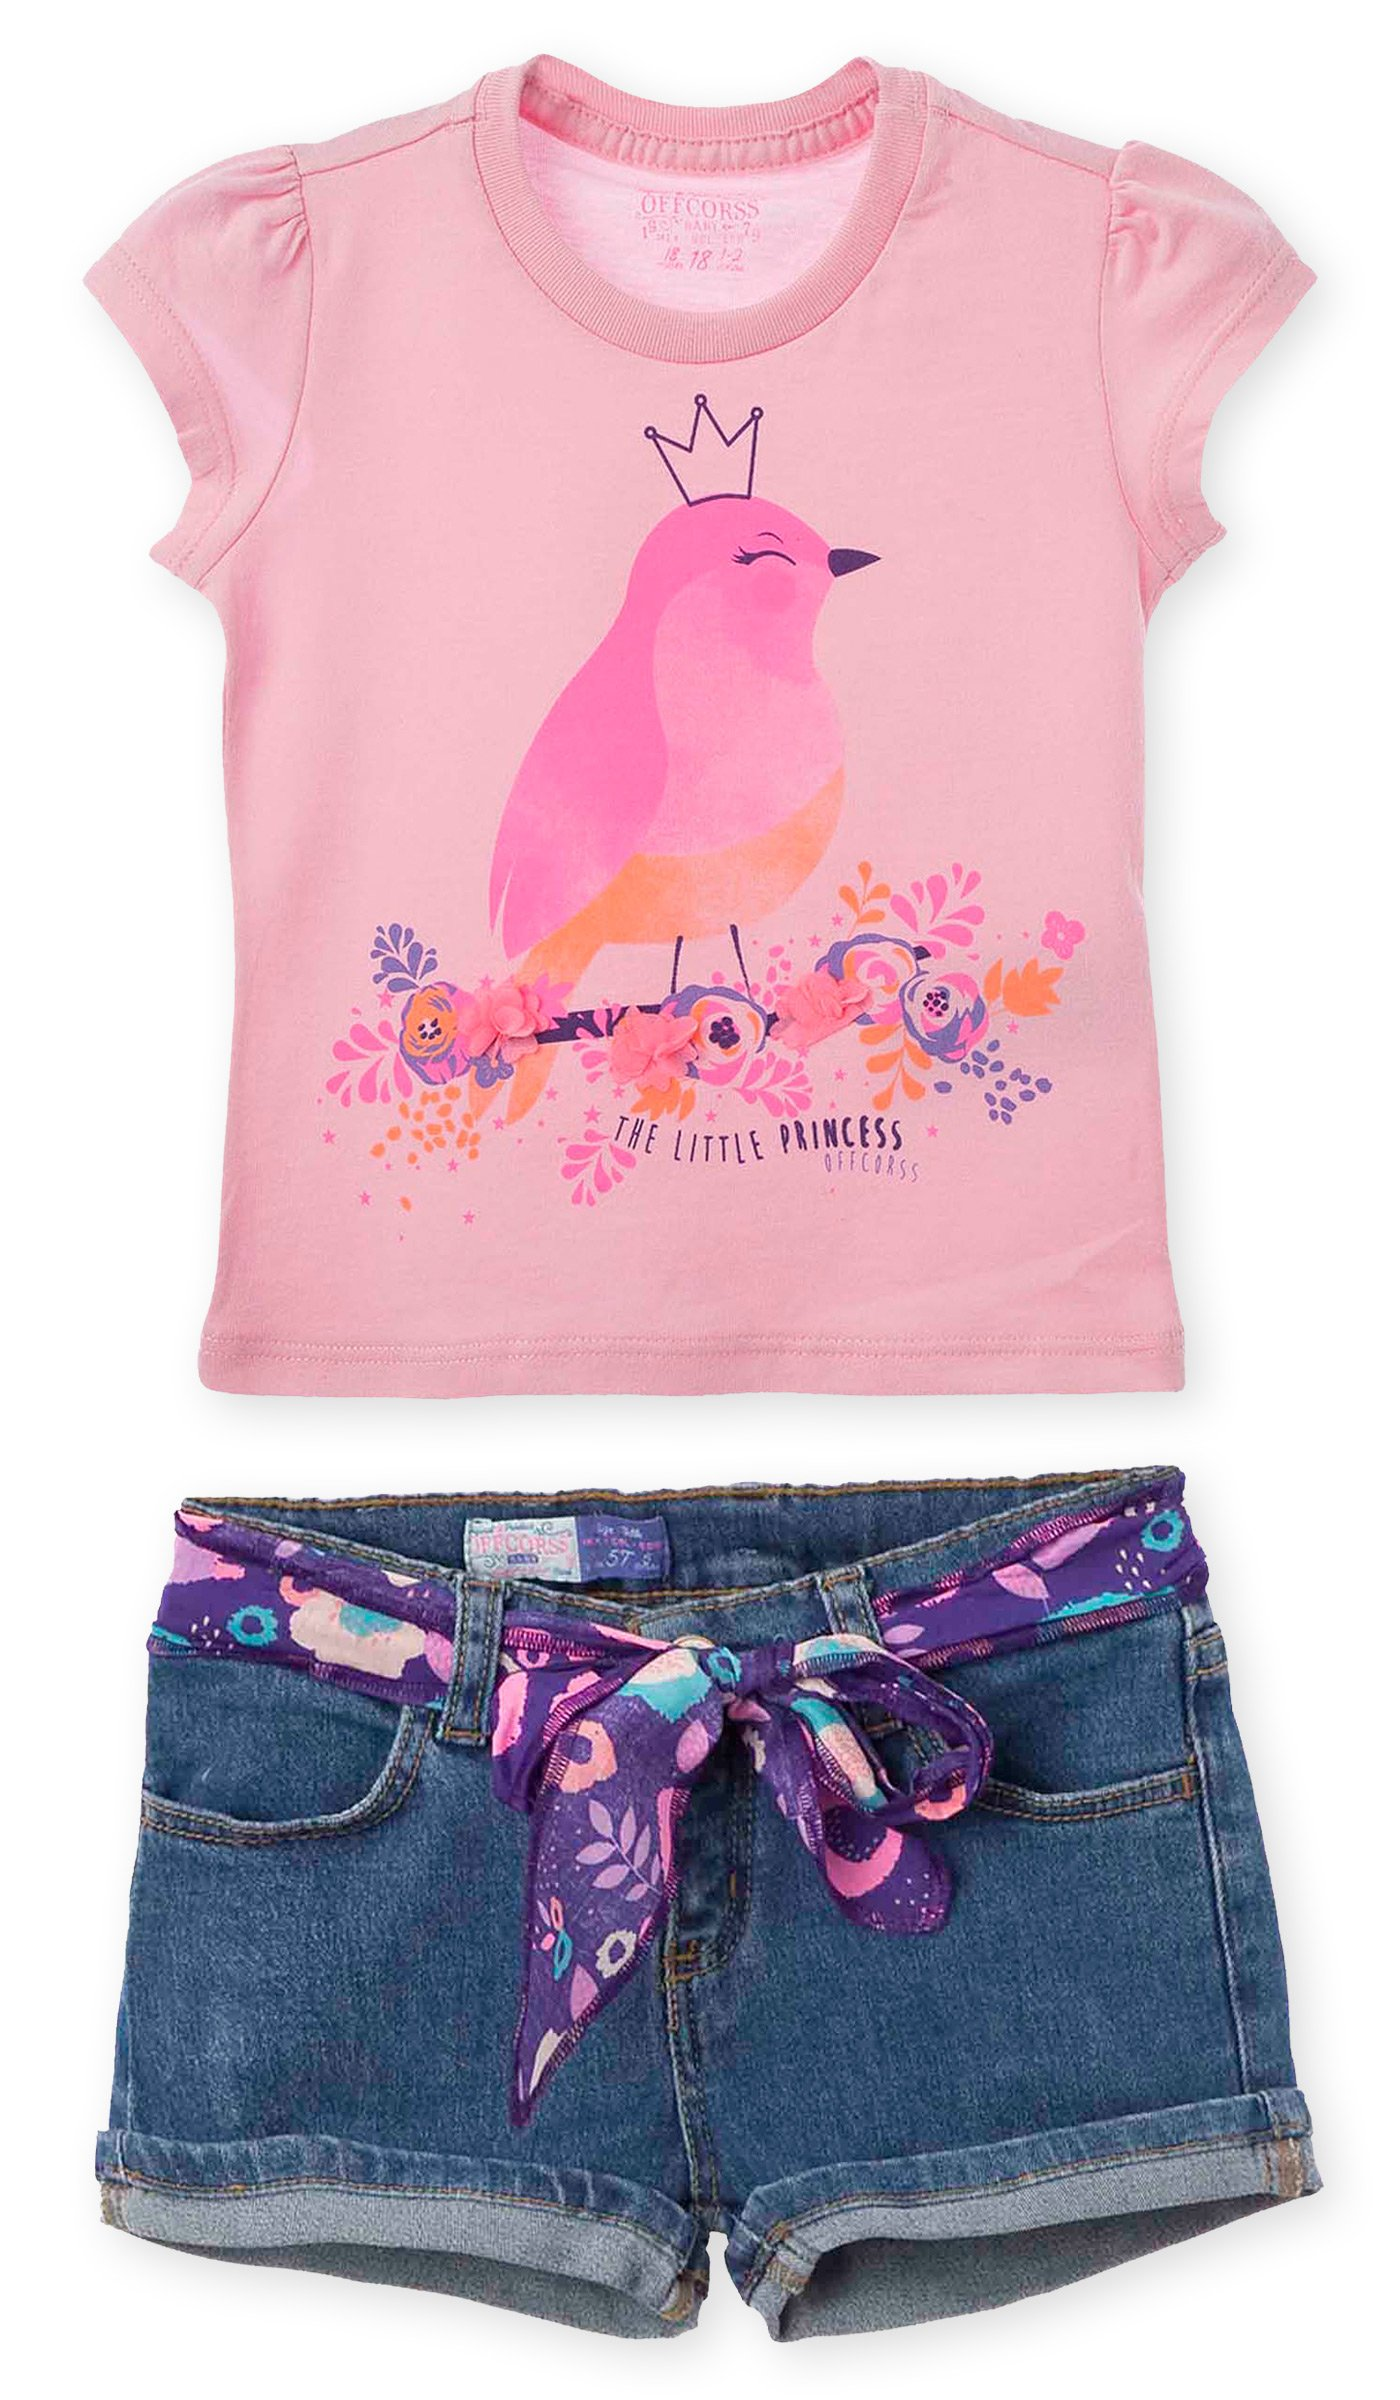 OFFCORSS Spring Summer Cute Twin Sister Matching Outfit Set for Toddler Girl Baby Photography Photoshoot Short T Shirt Conjunto de Niñas Pink 3T